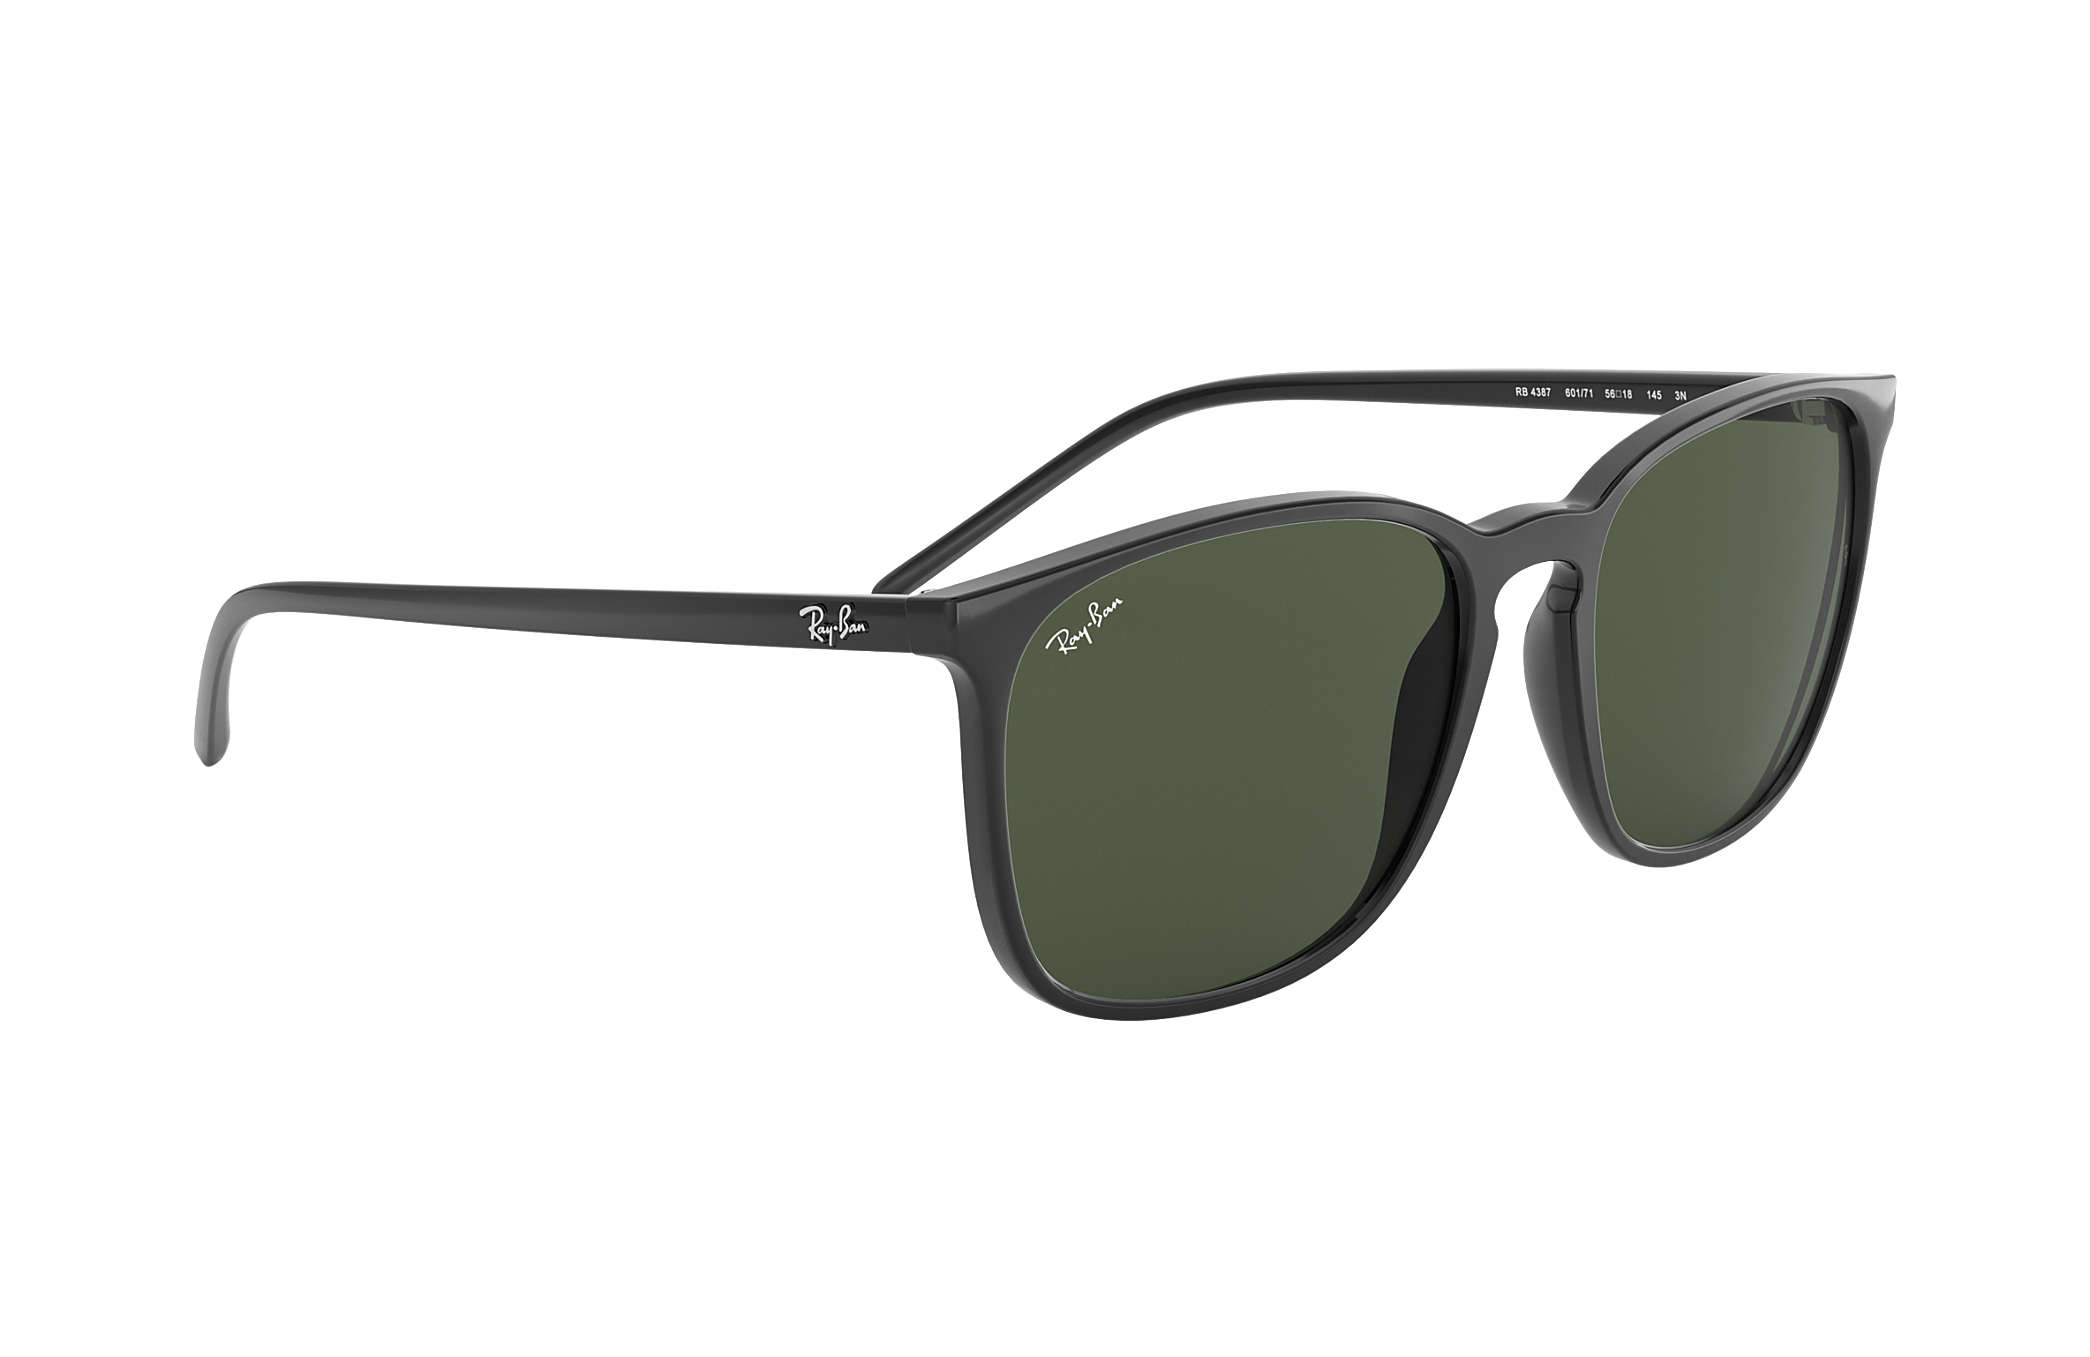 bd3bf6d0ecdd3 Ray-Ban RB4387 Black - Nylon - Green Lenses - 0RB4387601 7156   Ray ...